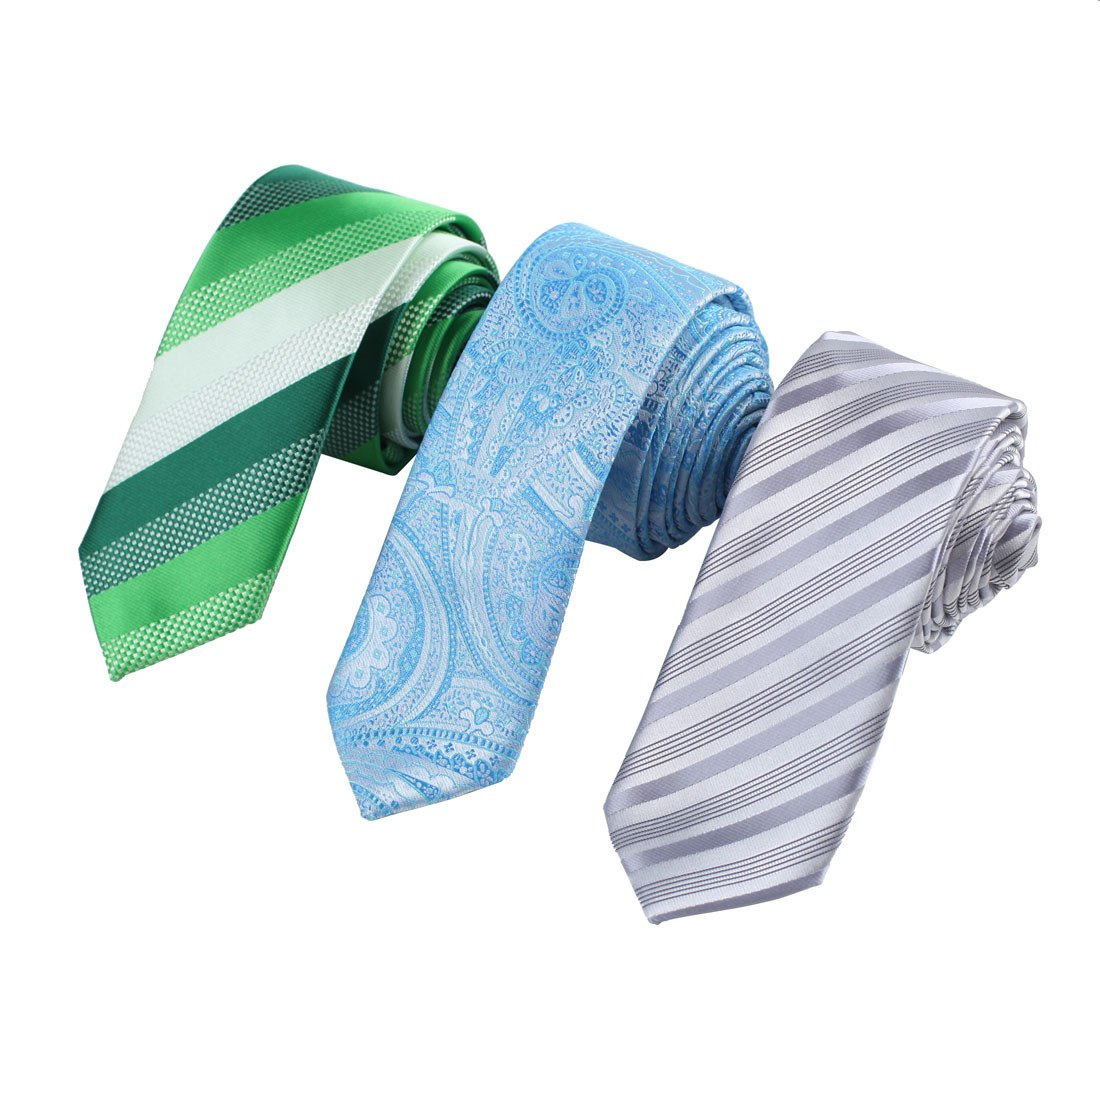 EAFF0040 Design Series Silk Men's Slim Ties Striped For Wedding Set Of 3 Skinny Ties By Epoint